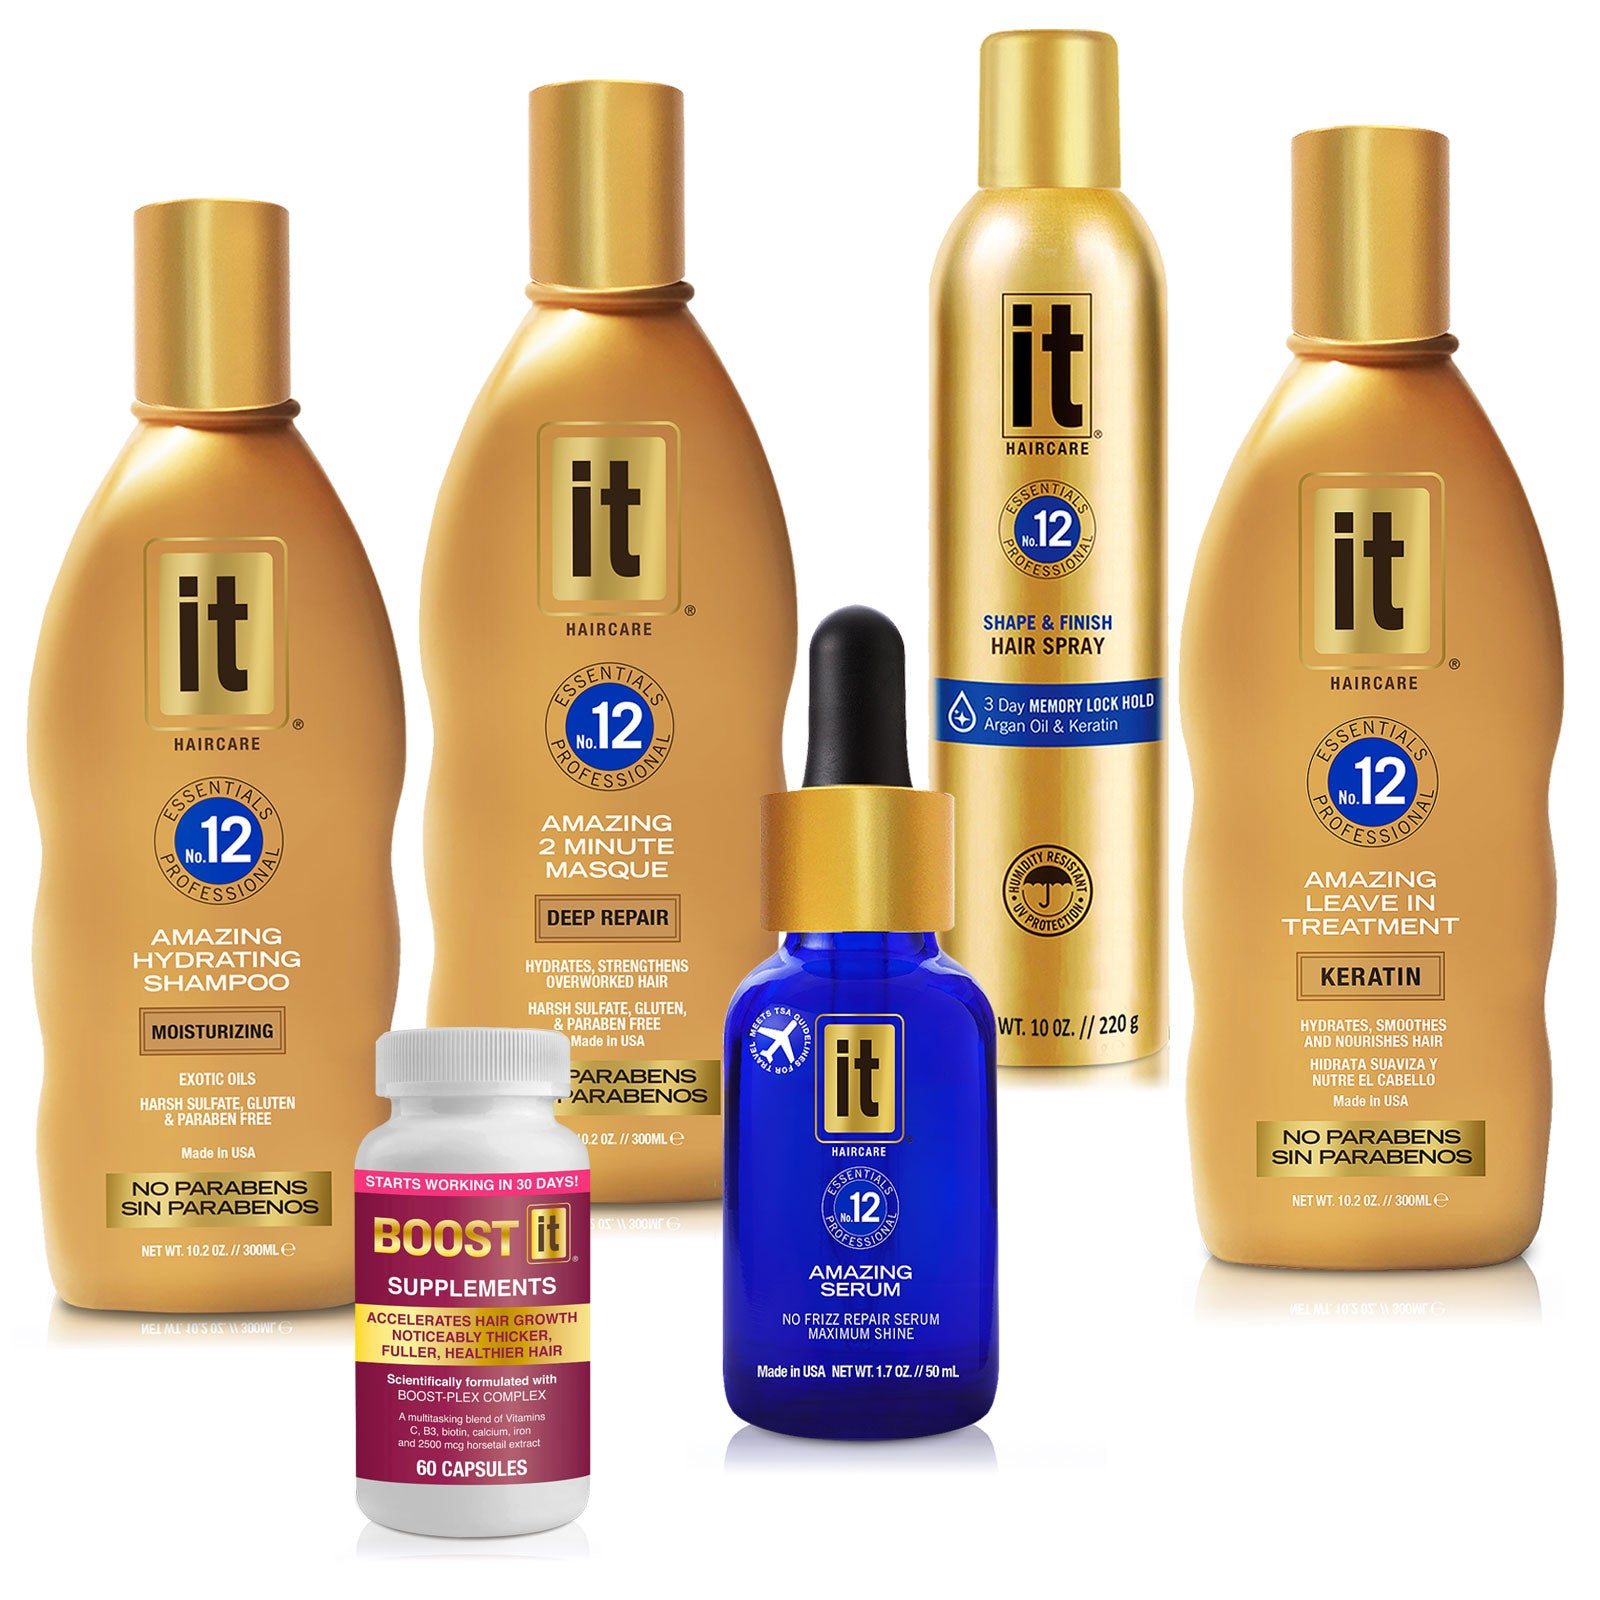 IT GOLD PRO - Over Processed Hair - Repair & Smooth Program